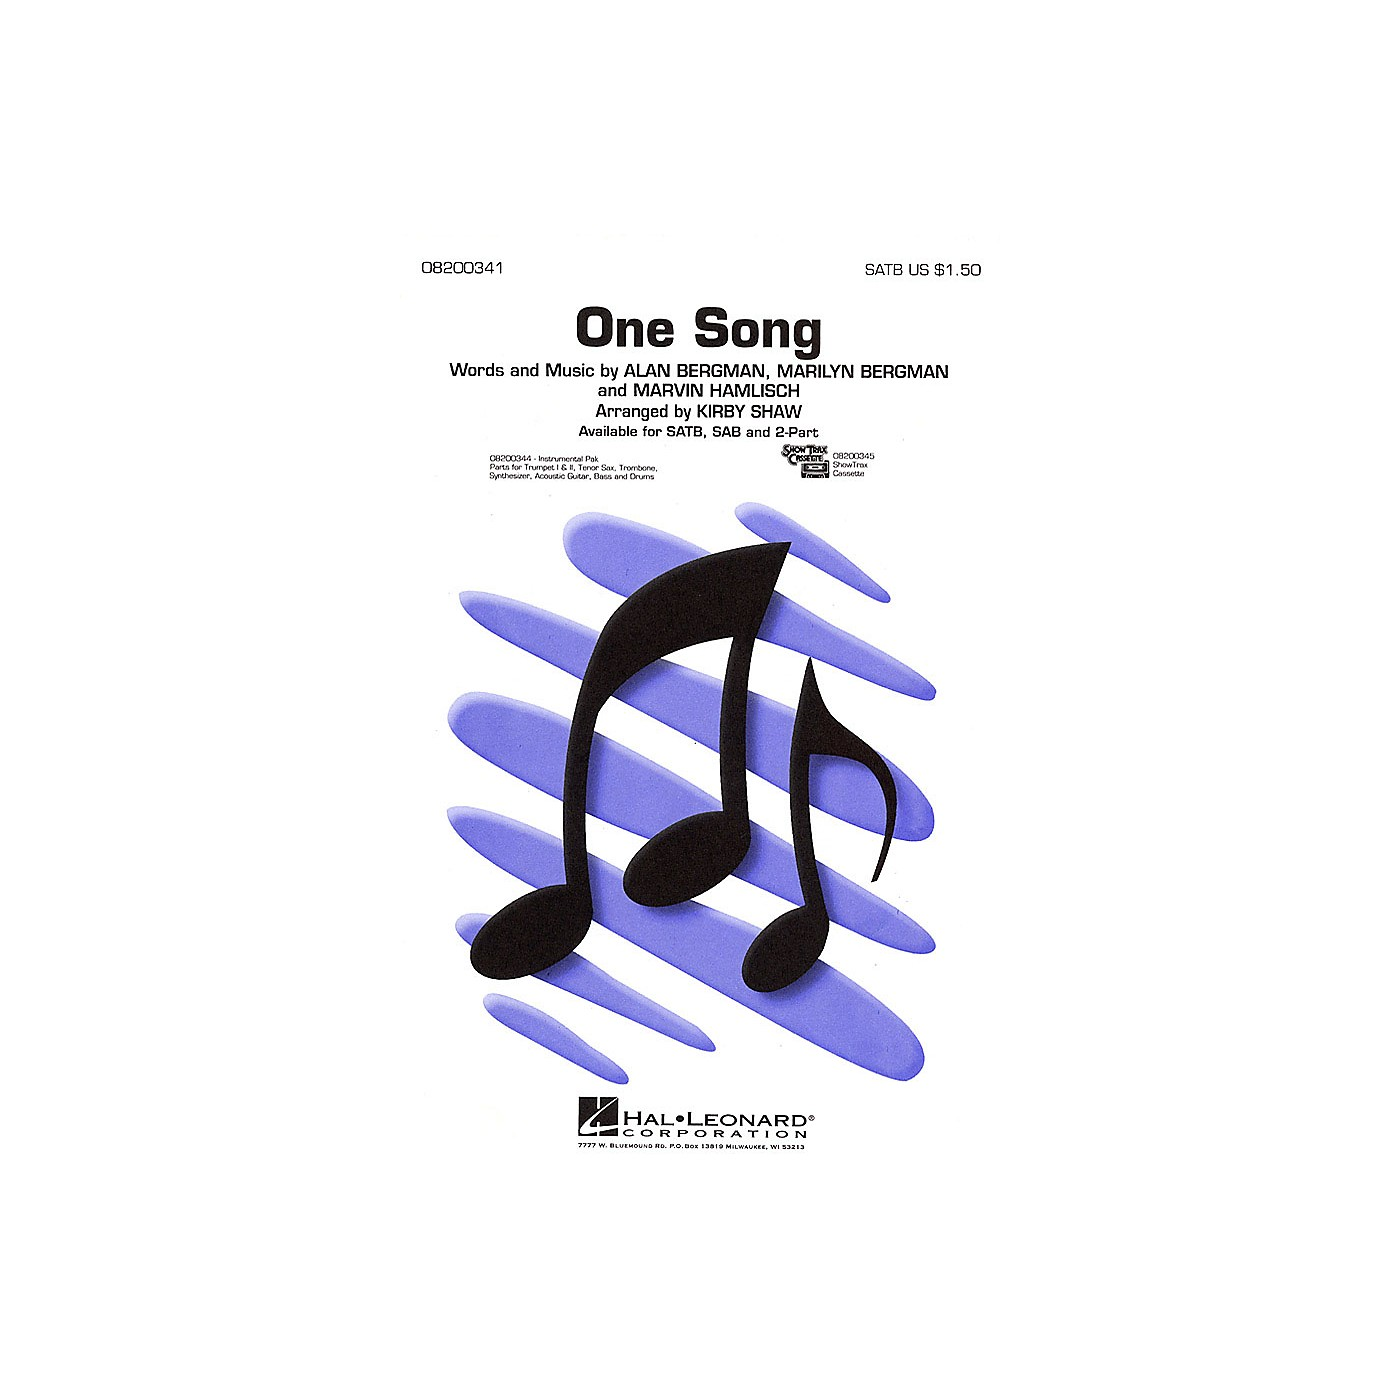 Hal Leonard One Song 2-Part Arranged by Kirby Shaw thumbnail